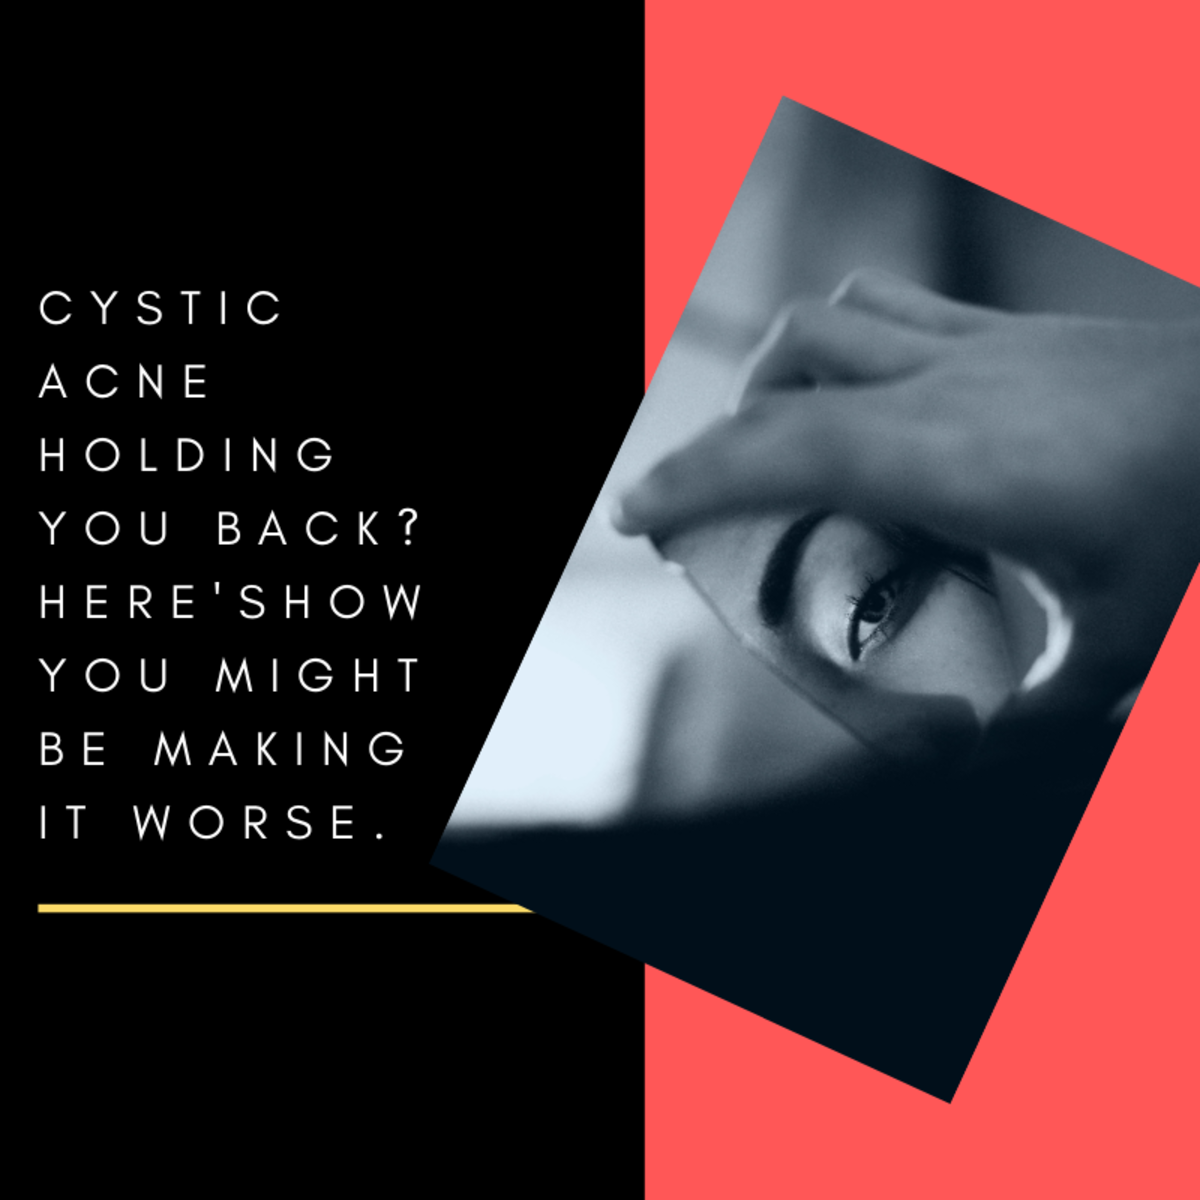 How You May Be Making Your Cystic Acne Worse